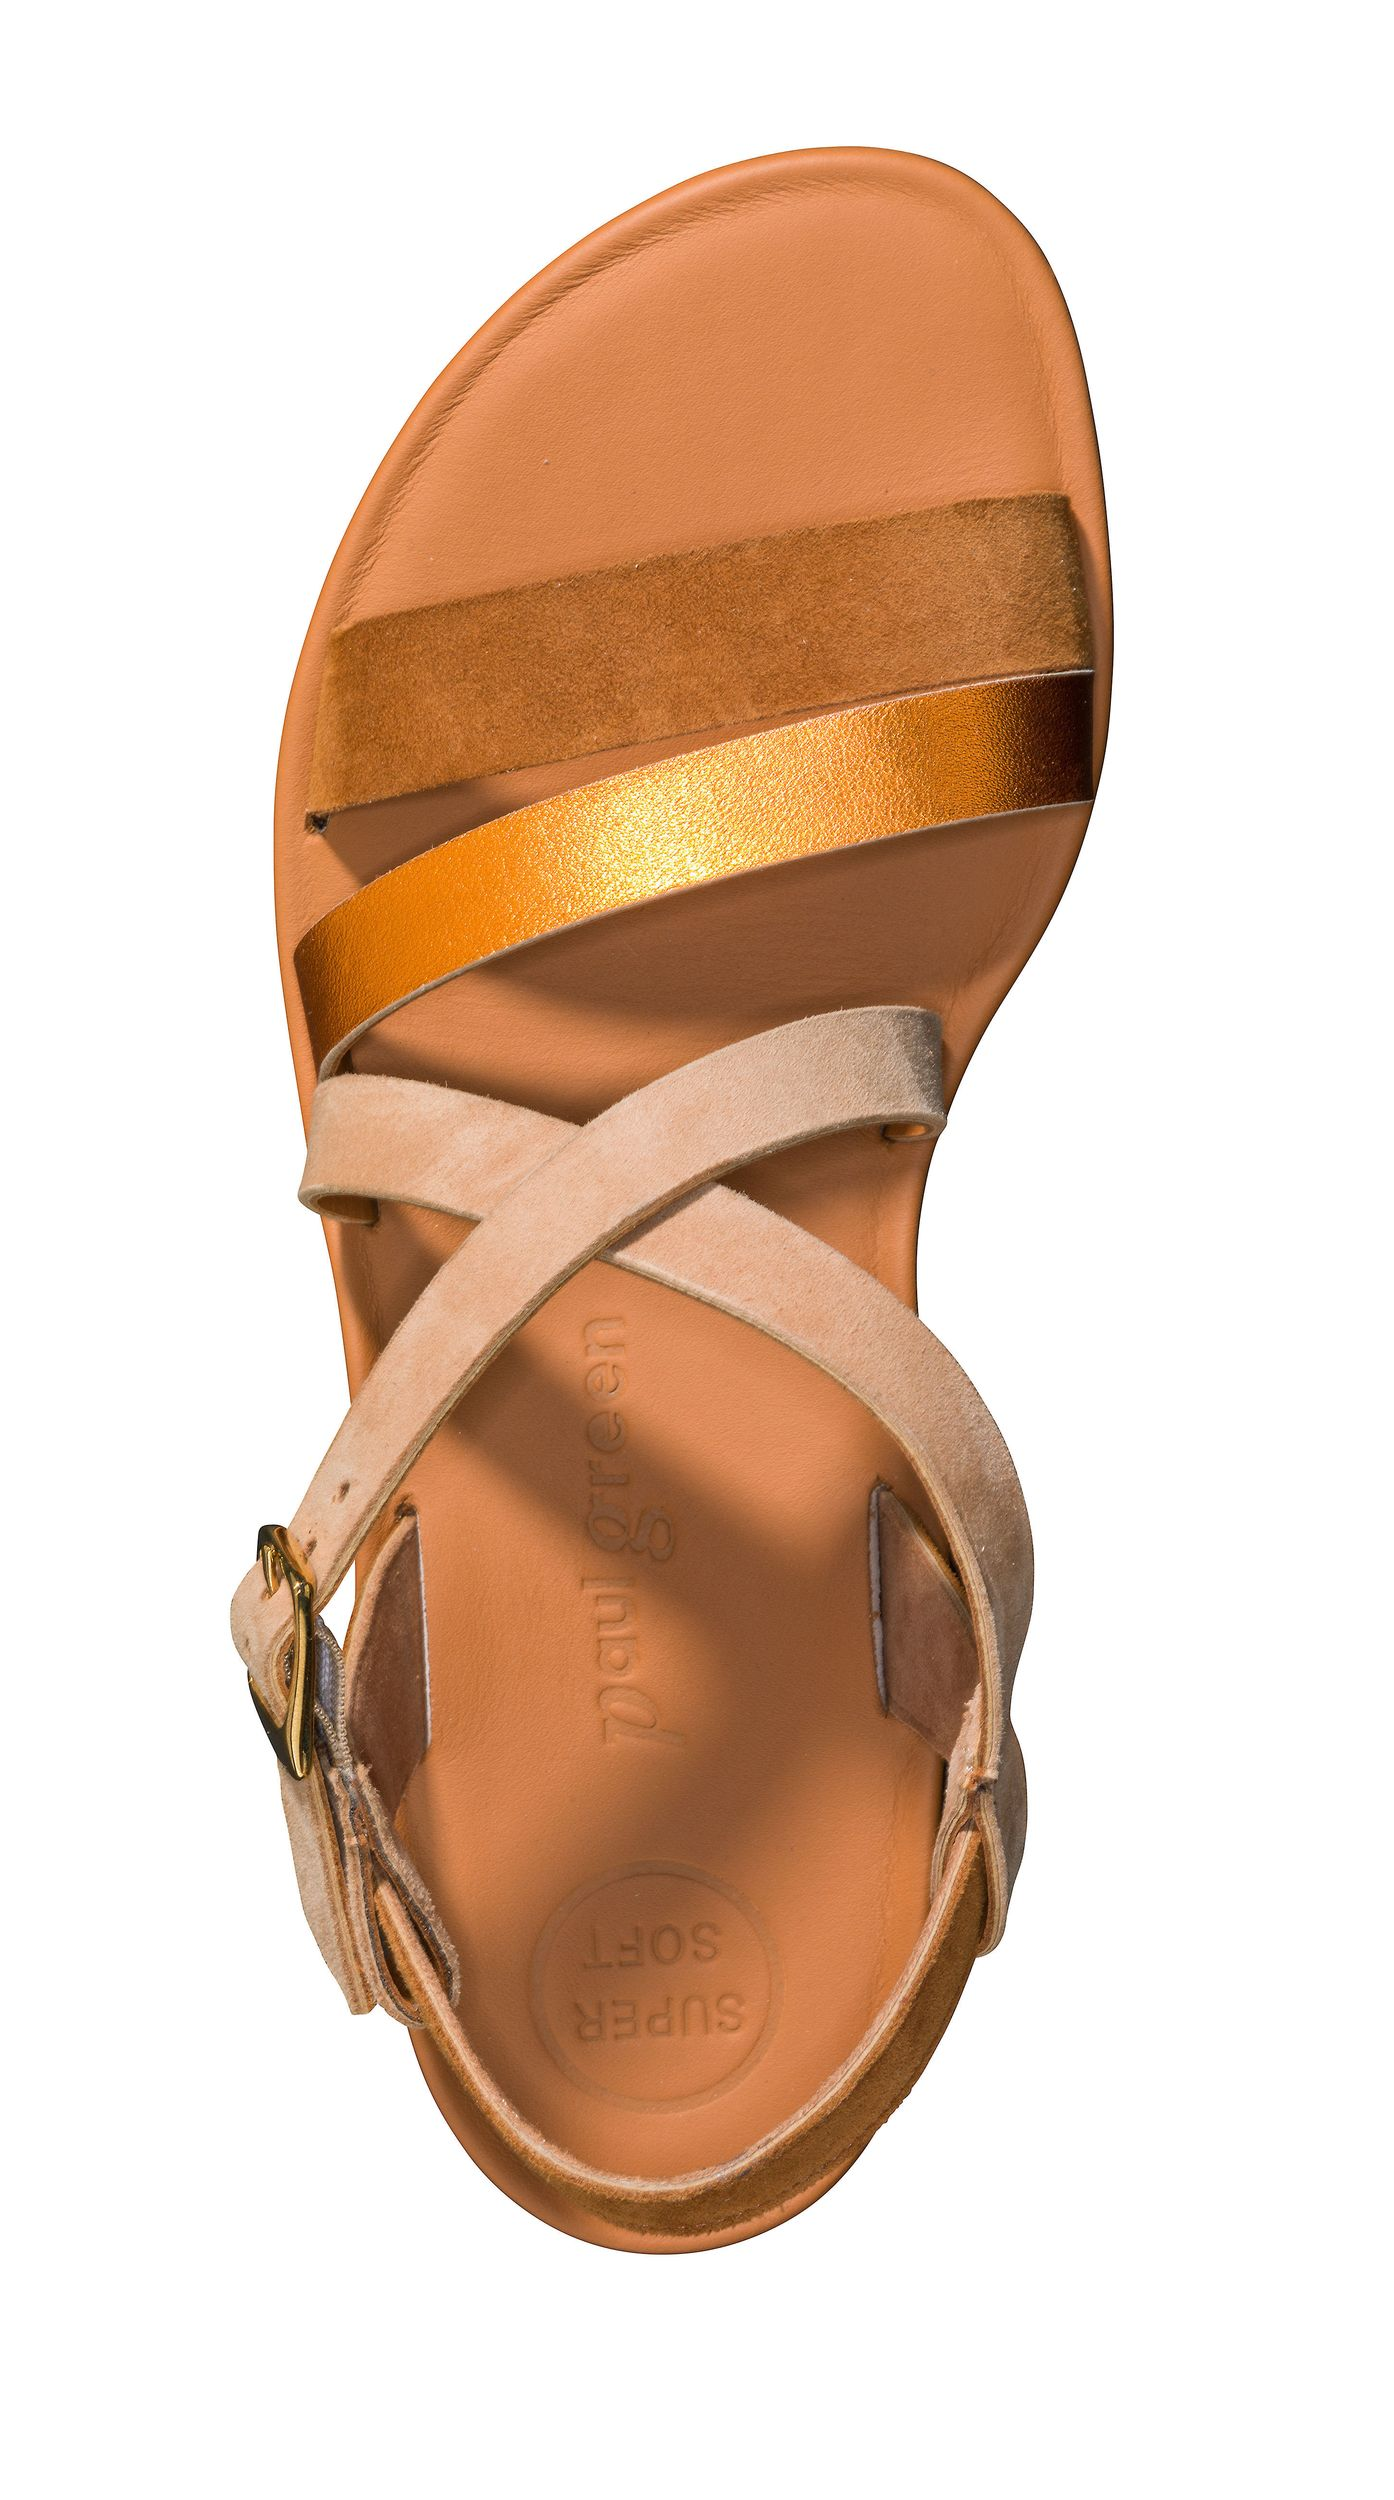 SUPER SOFT sandals in beige and brown